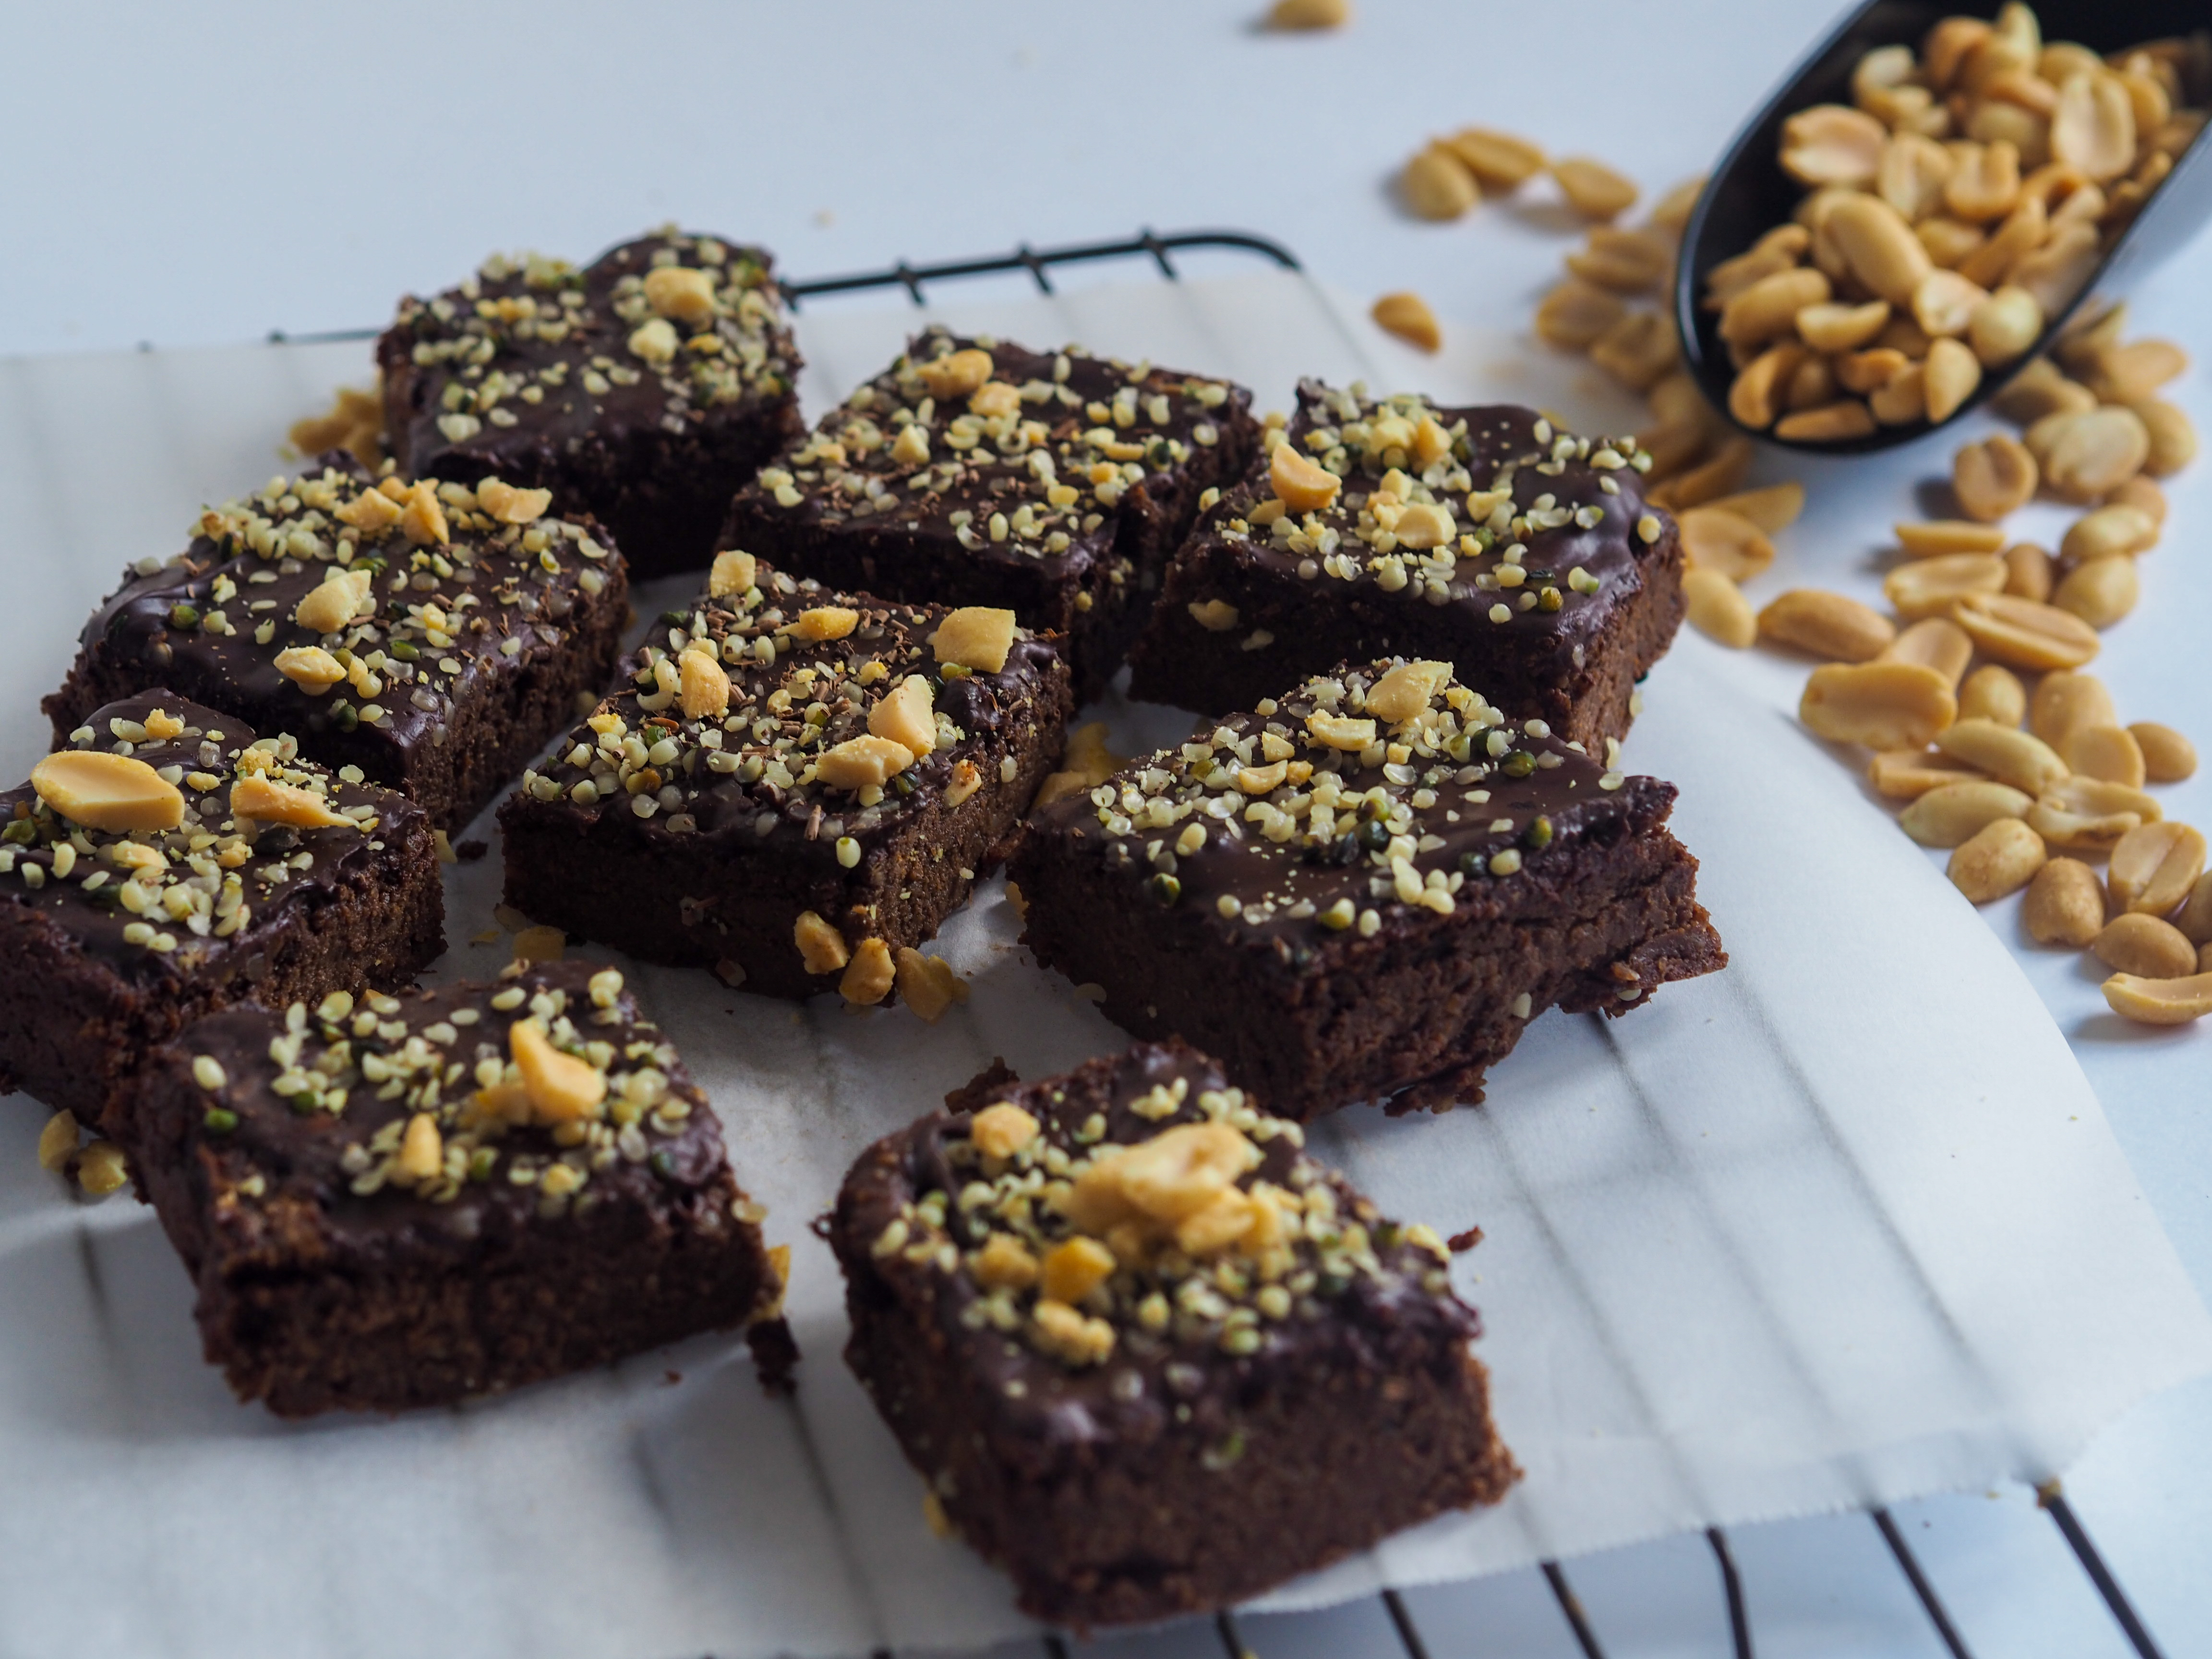 Fudgy chocolate and peanut butter brownies